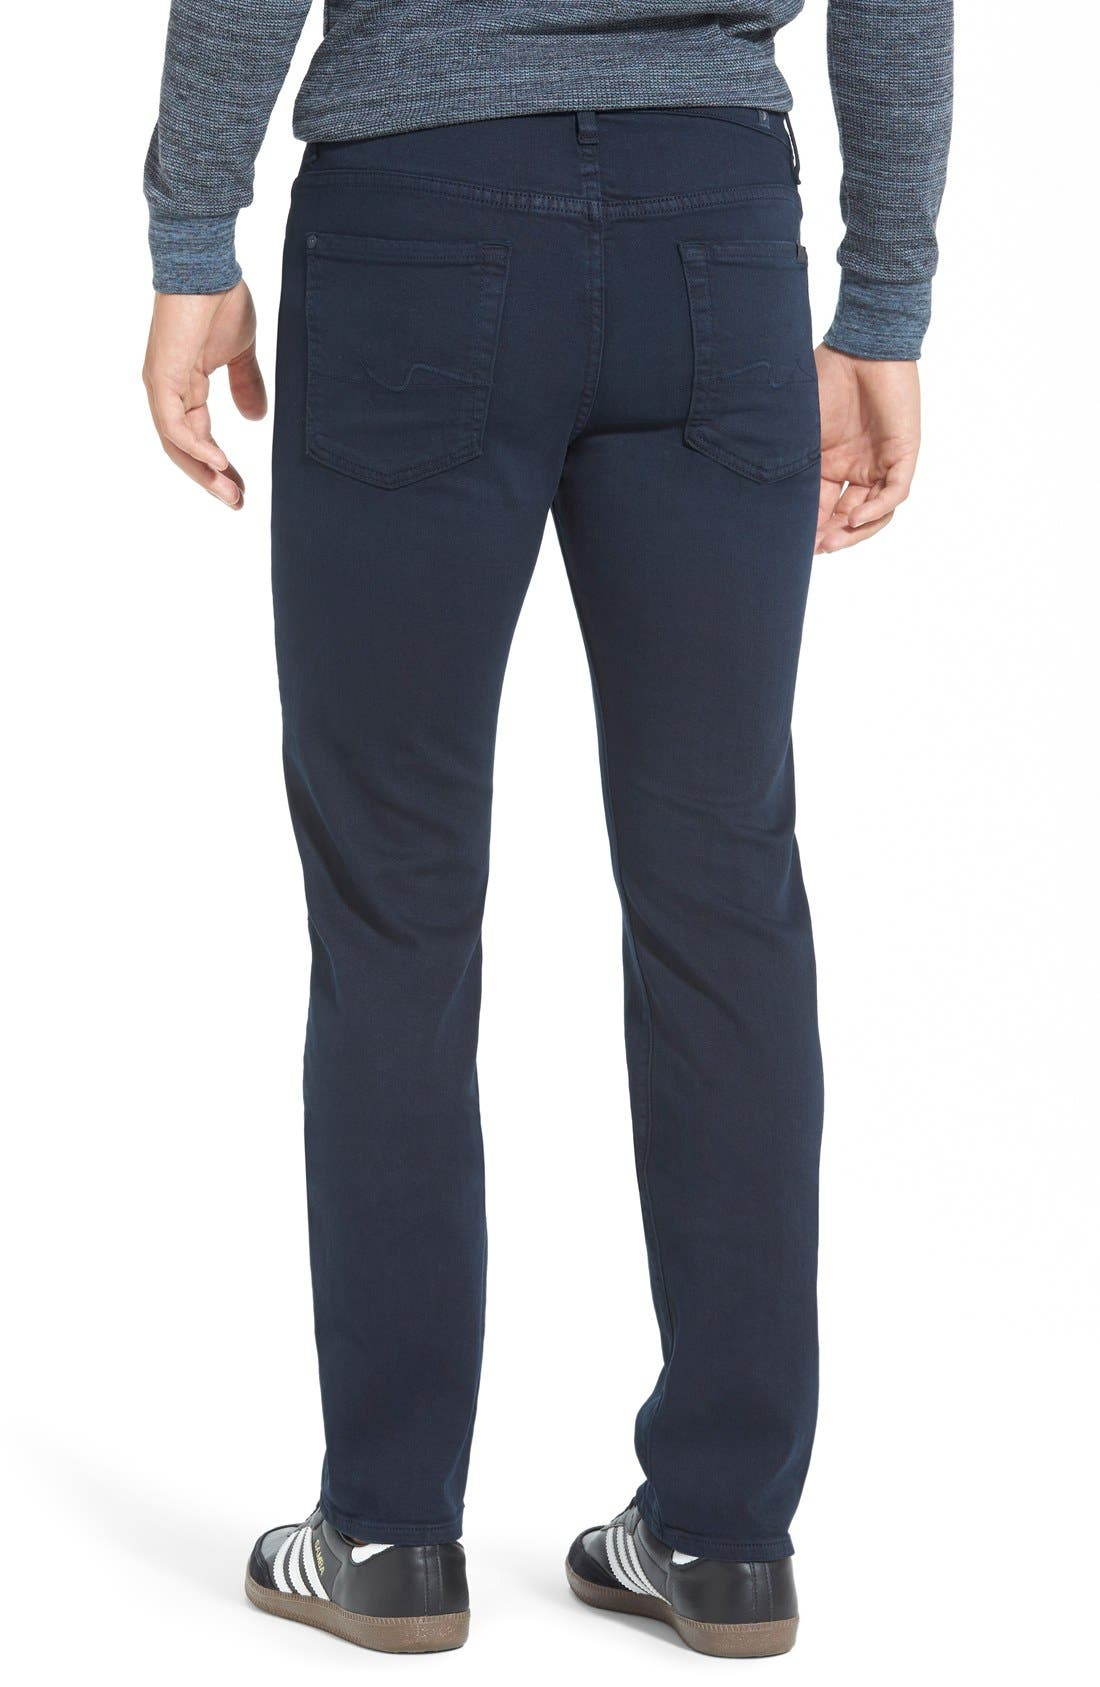 'Slimmy - Luxe Performance' Slim Fit Jeans,                             Alternate thumbnail 6, color,